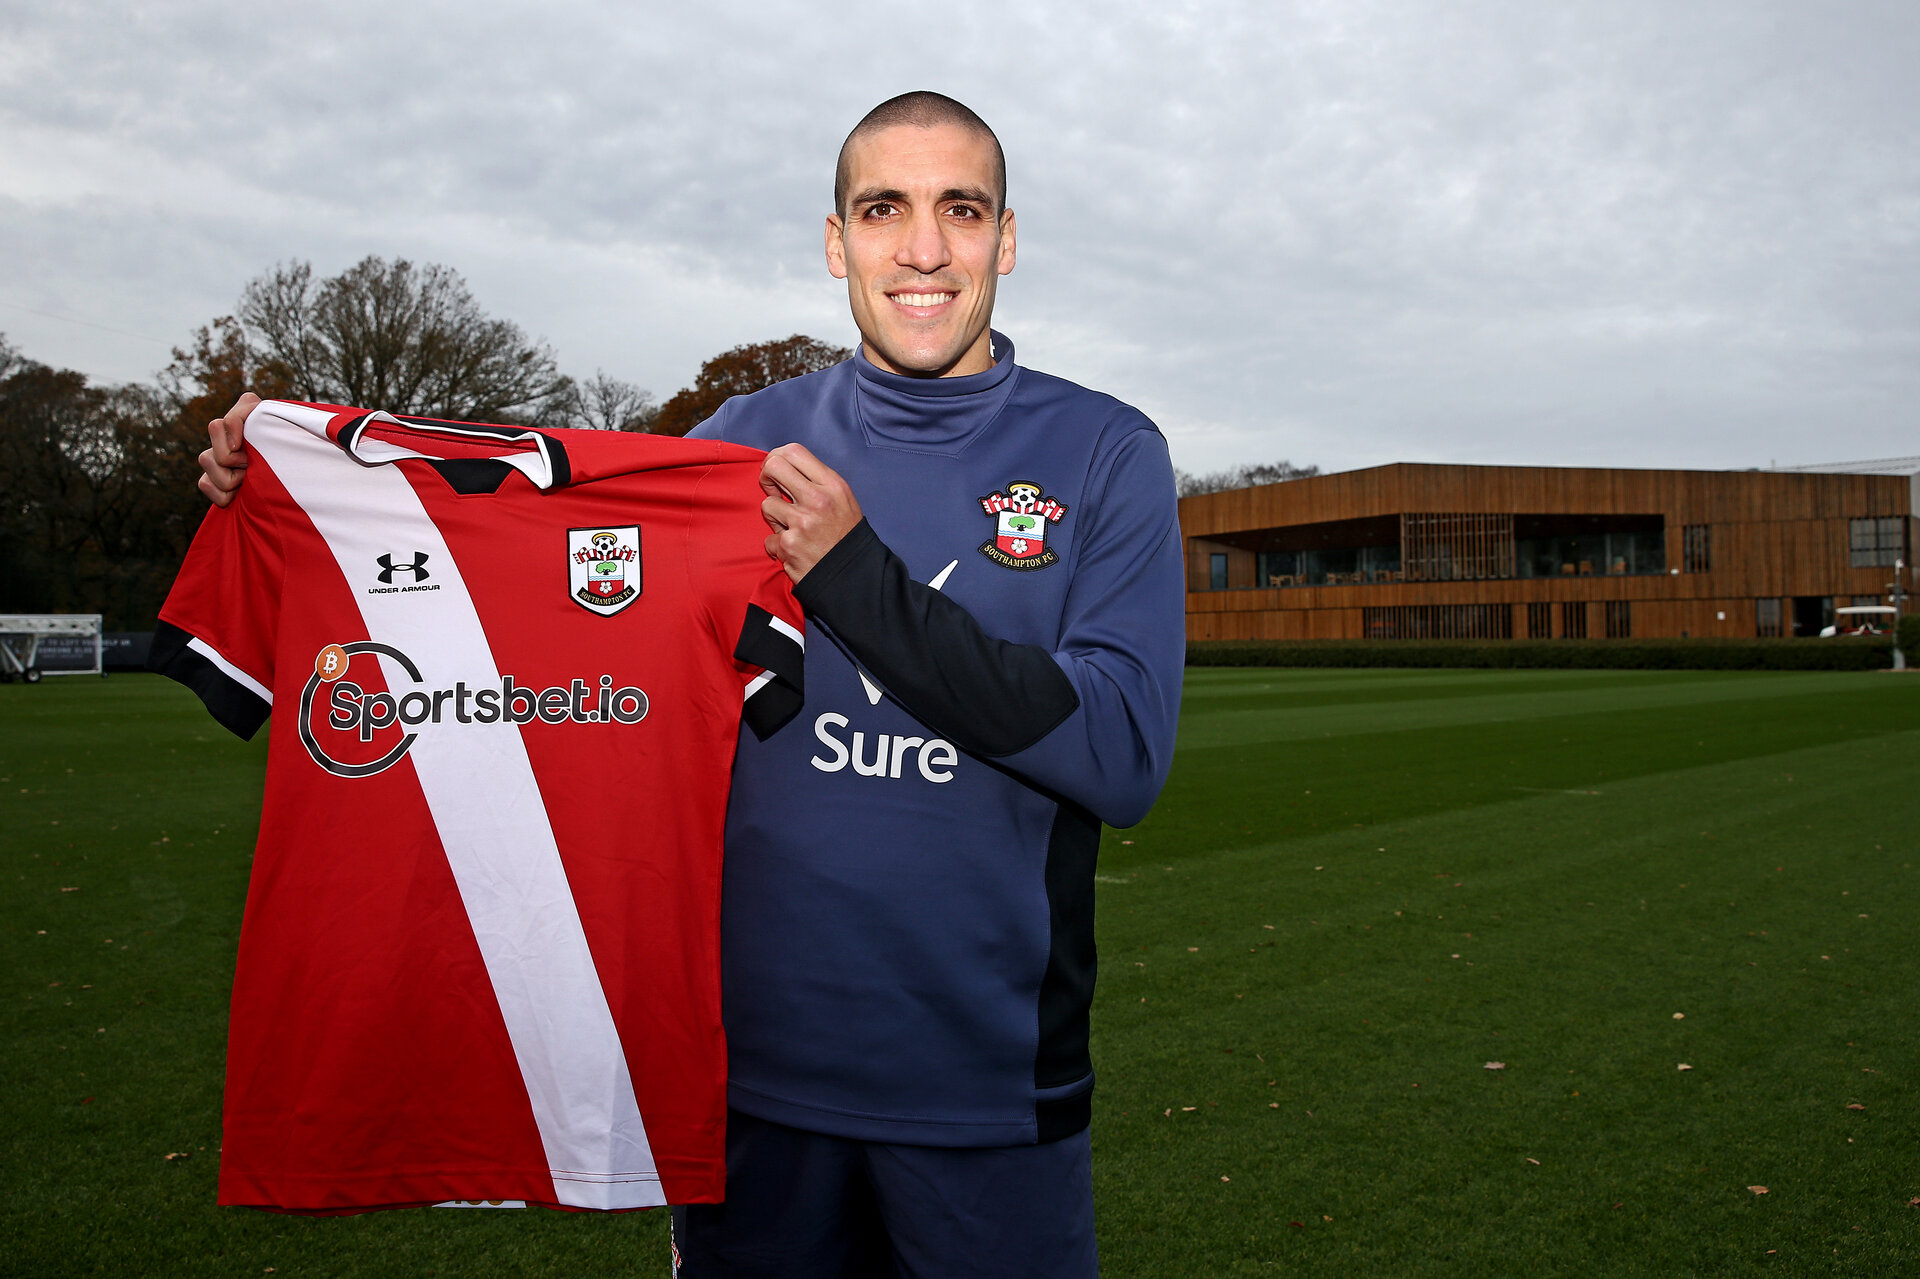 SOUTHAMPTON, ENGLAND - NOVEMBER 16: Oriol Romeu signs a new contract with Southampton FC, pictured at the Staplewood Campus on November 16, 2020 in Southampton, England. (Photo by Matt Watson/Southampton FC via Getty Images)